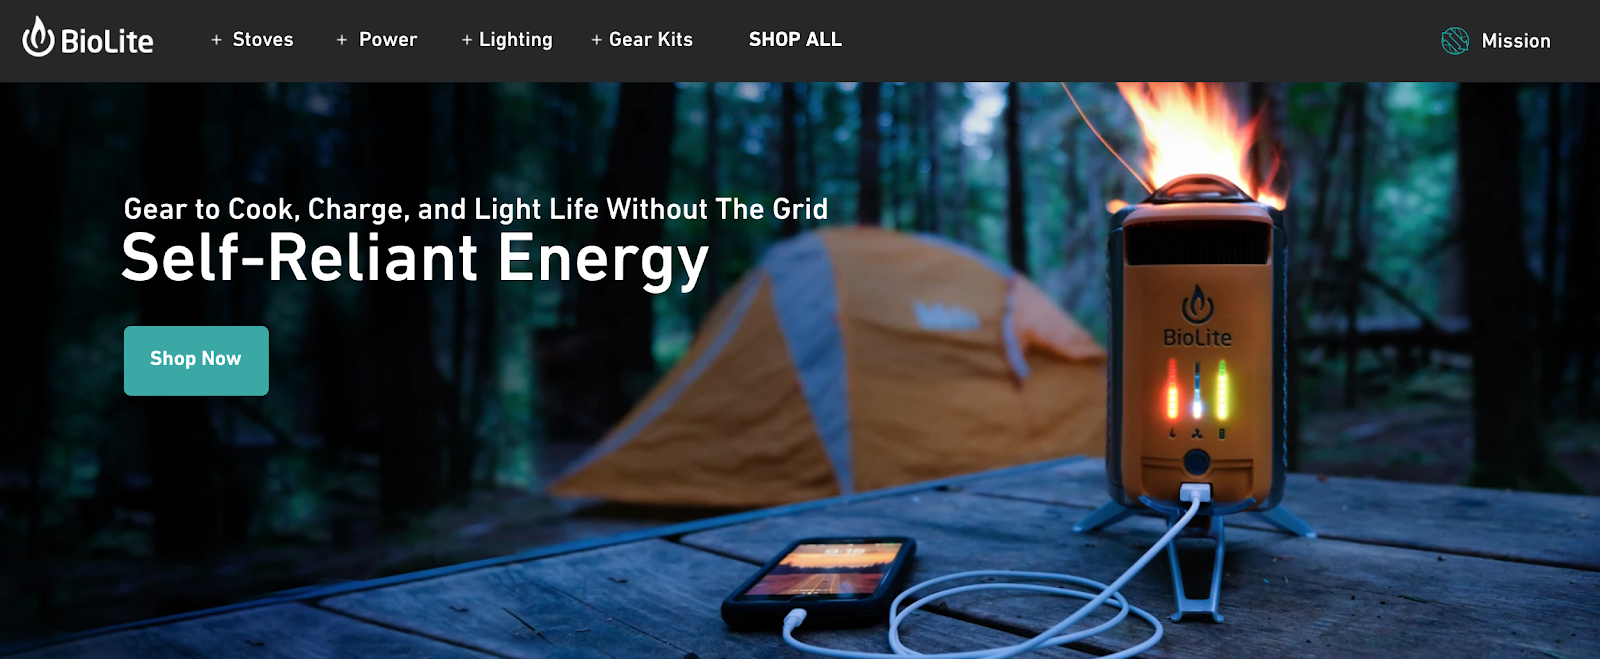 Biolite homepage with tent and BioLite charger in the background